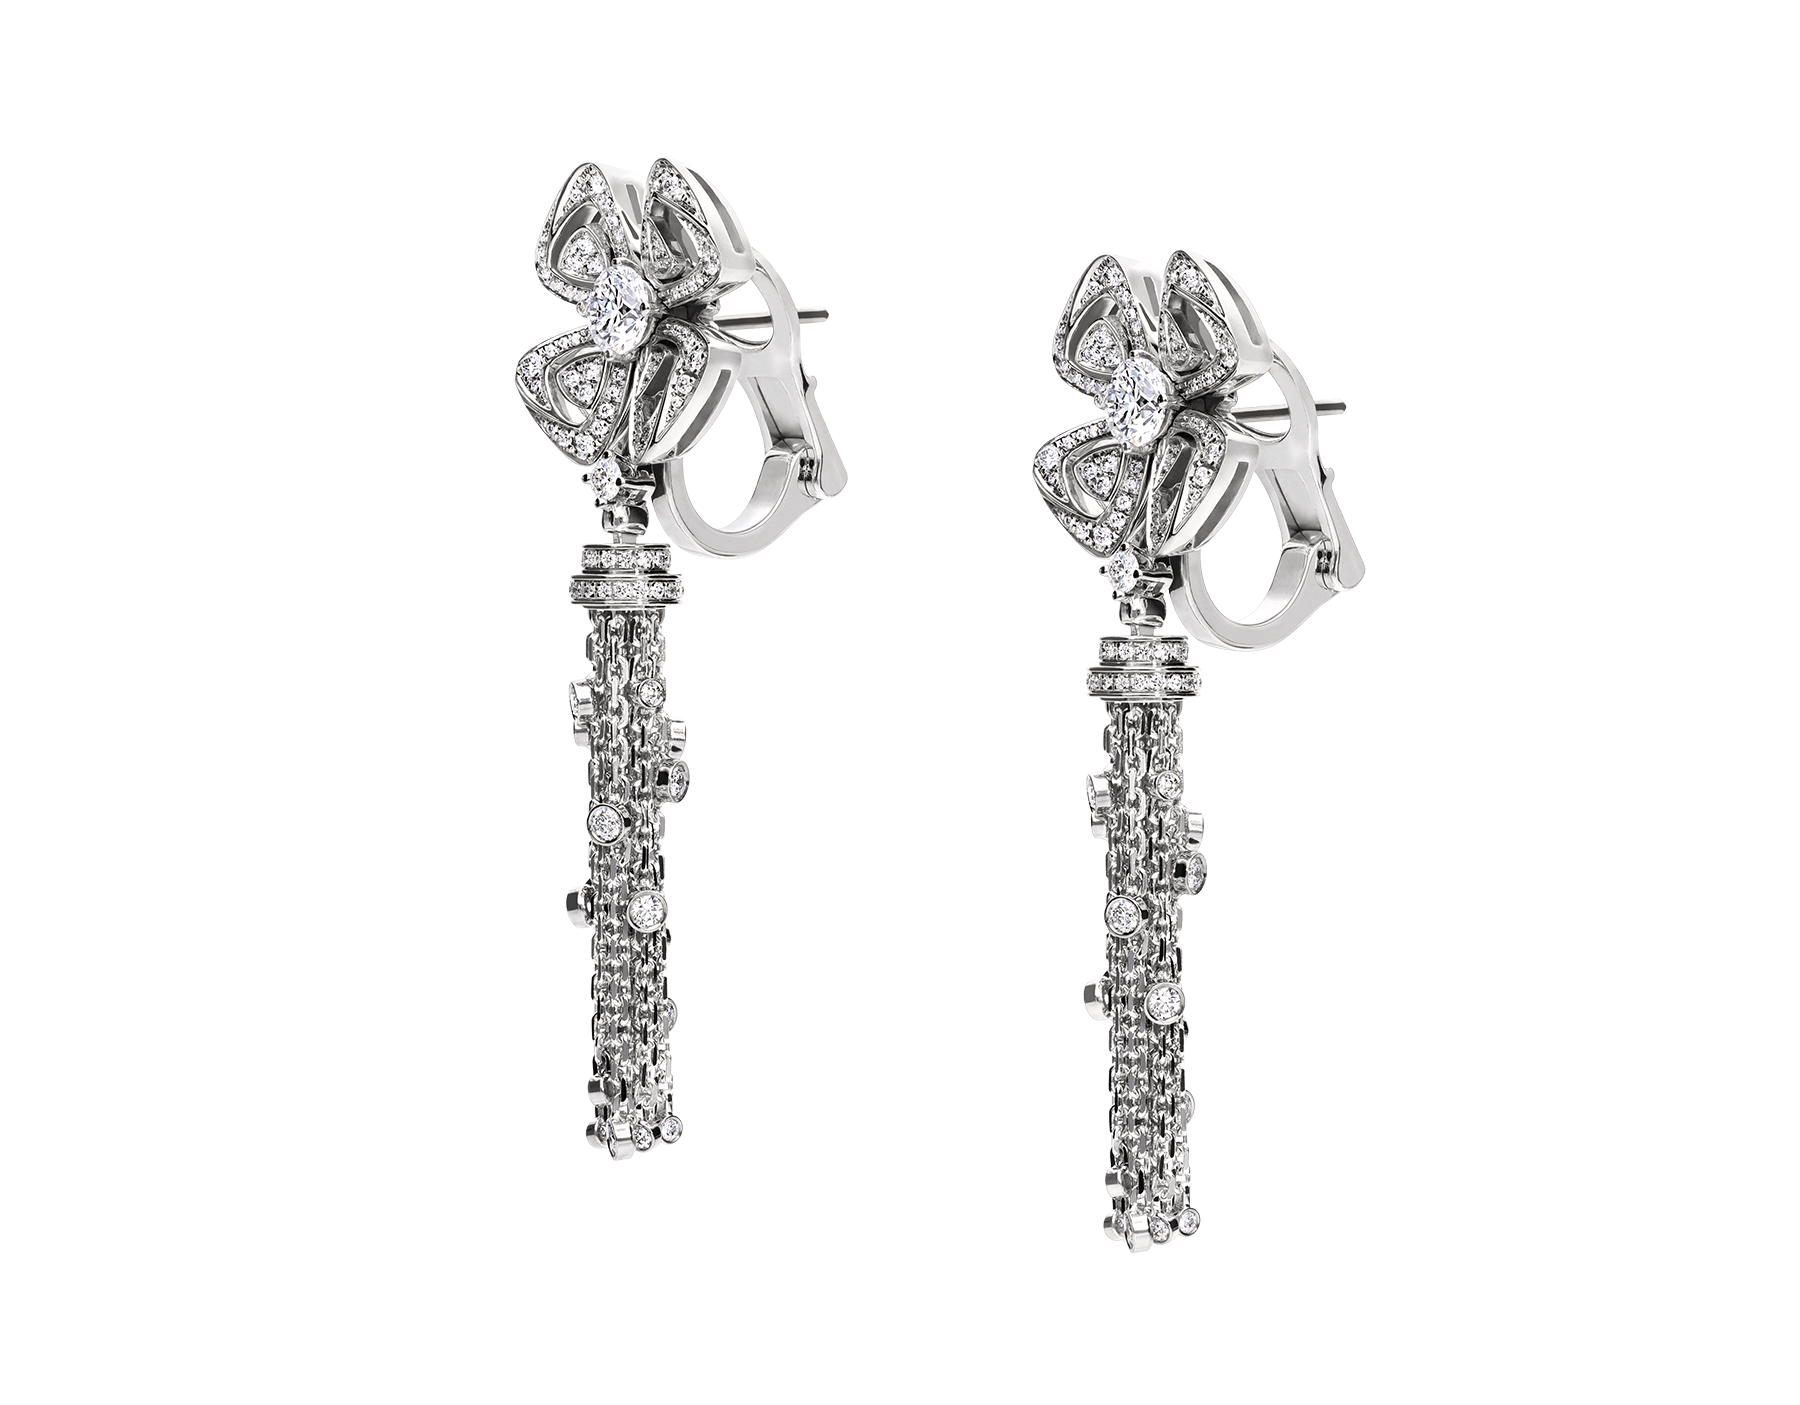 Fiorever 18 kt white gold earrings set with two central diamonds (0.30 ct each) and pavé diamonds (1.05 ct) 354528 image 2